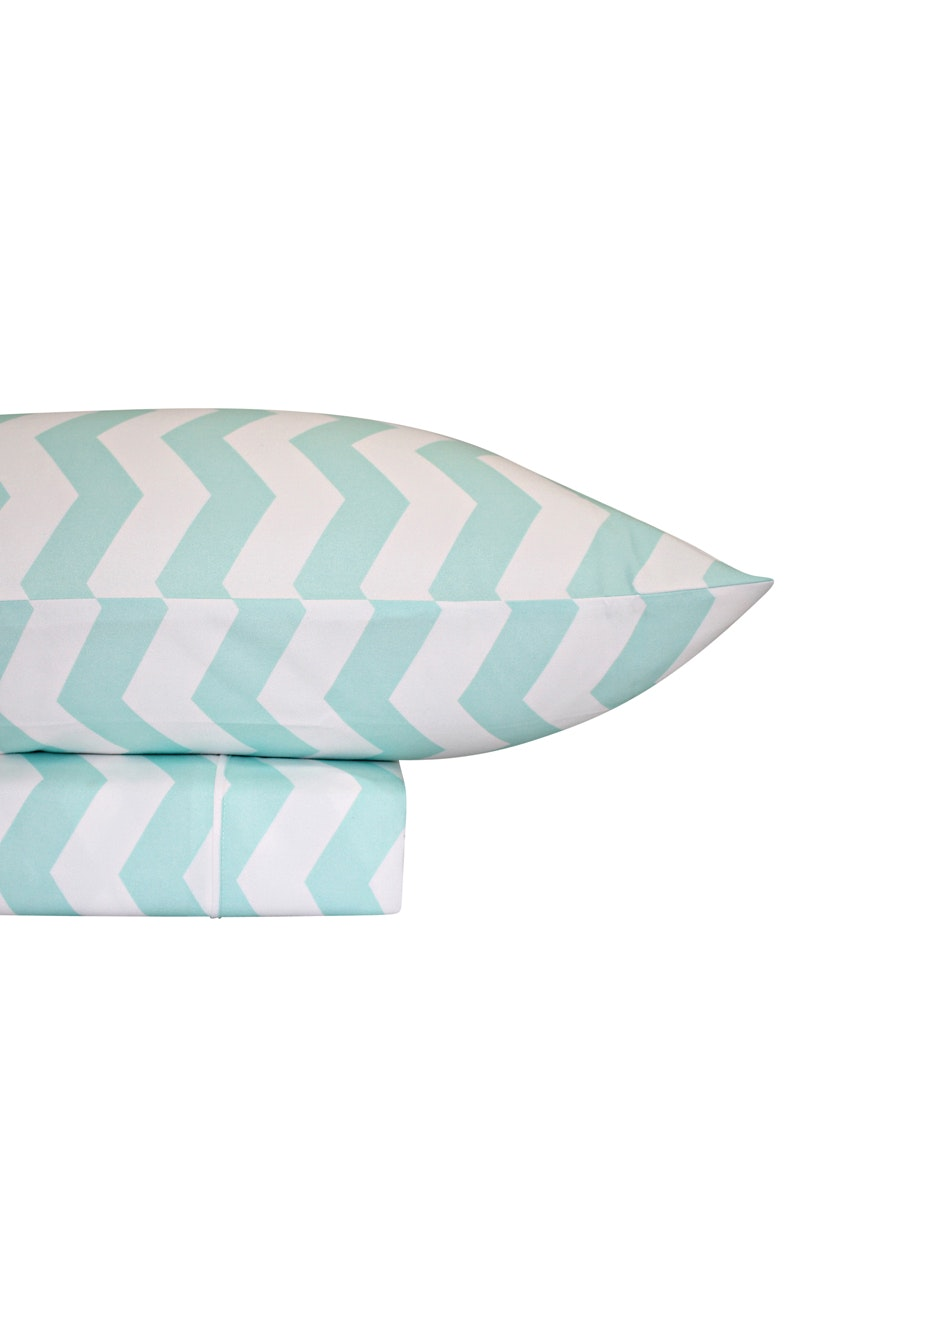 Thermal Flannel Sheet Sets - Chevron Design - Ice - Double Bed